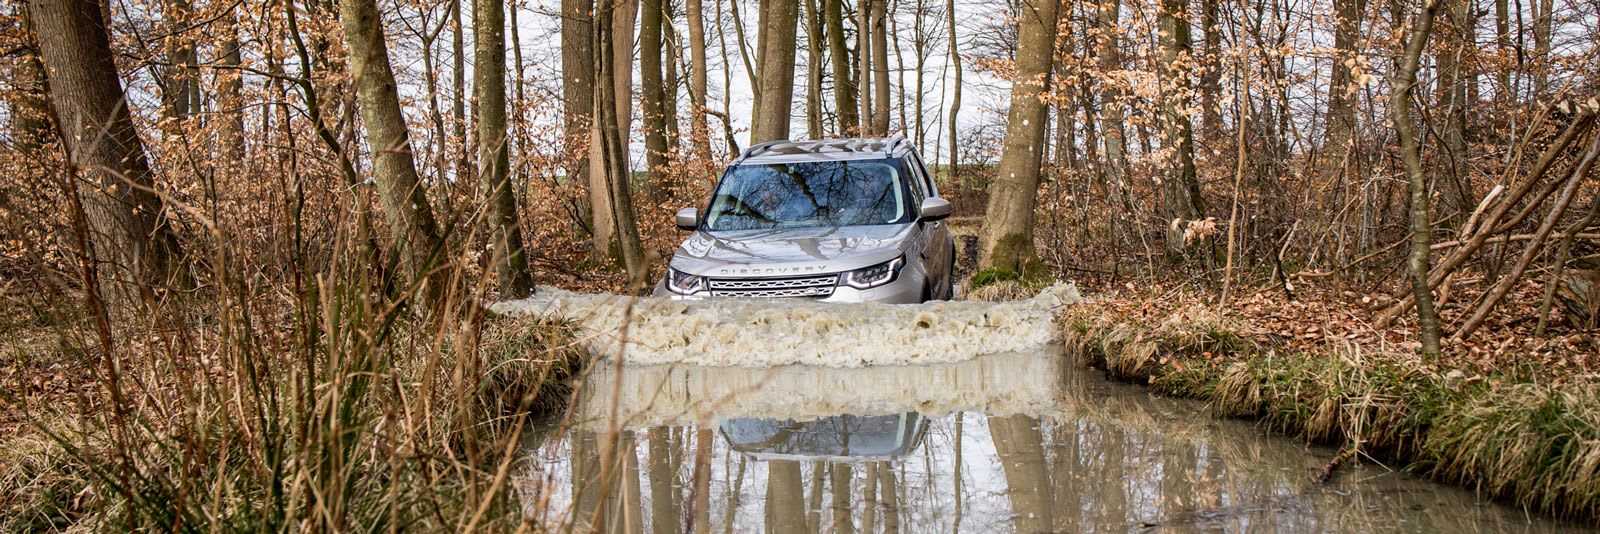 land rover discovery wading deep water